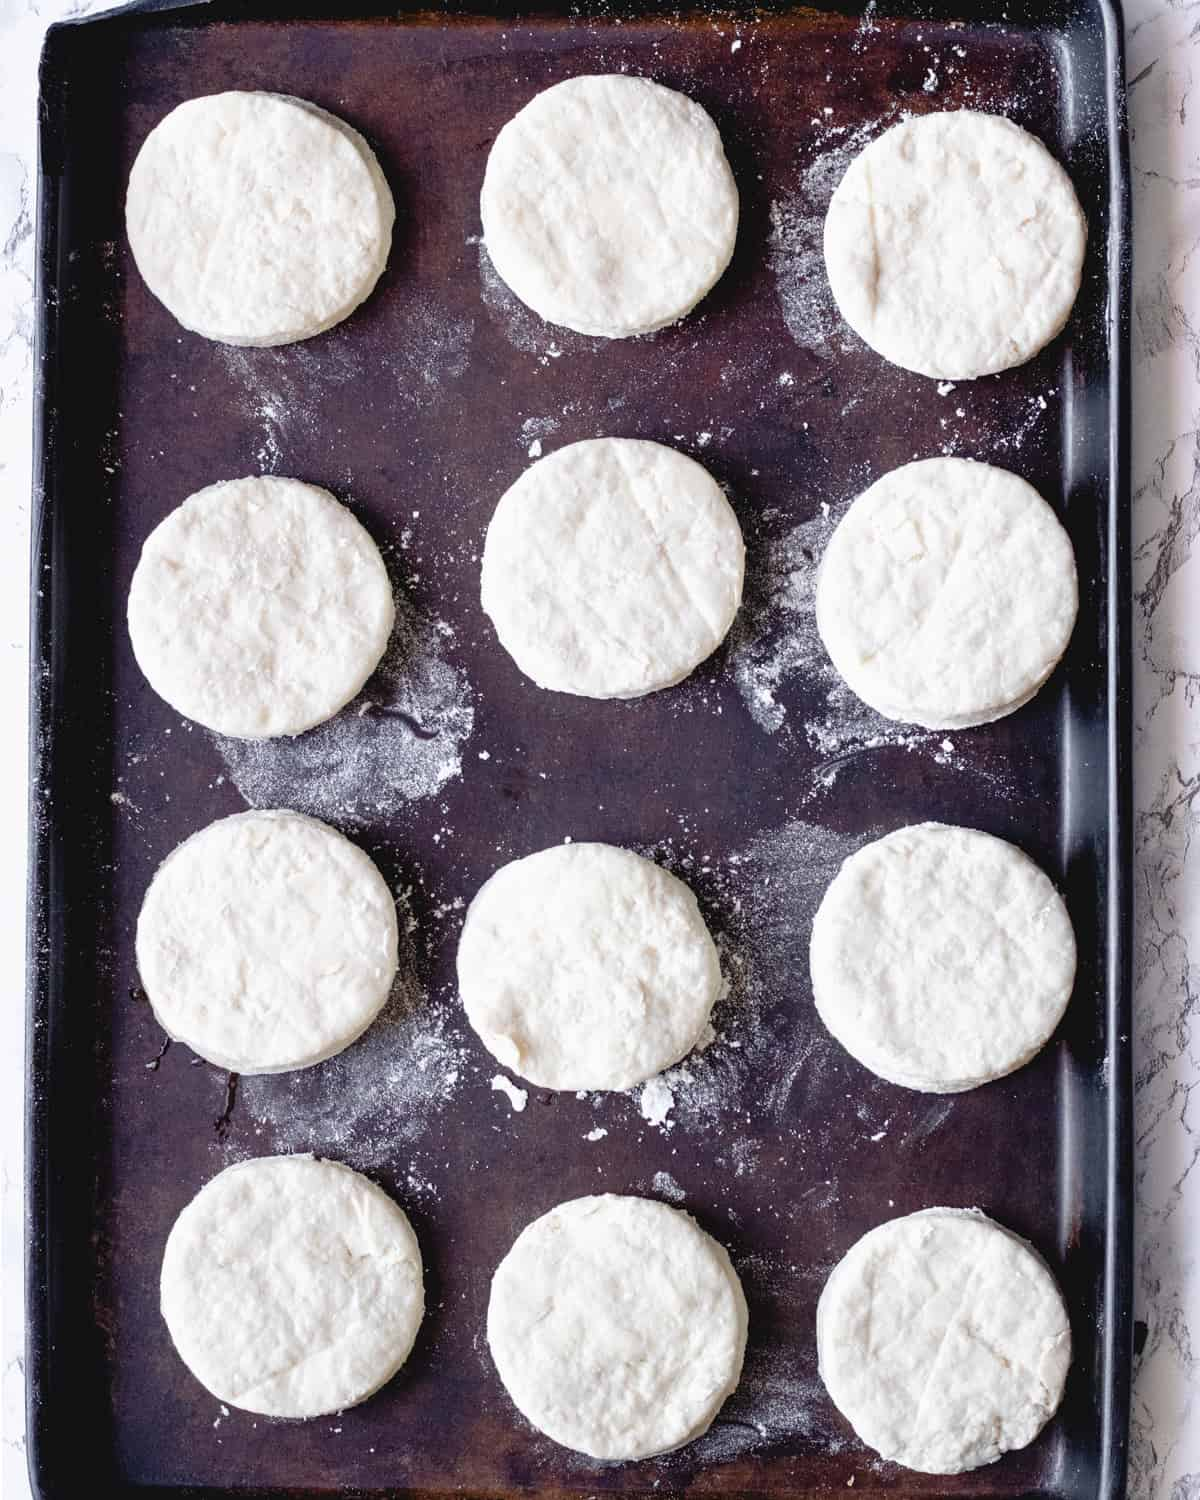 Baking sheet with 12 circles of biscuit dough laid out in 3 rows.